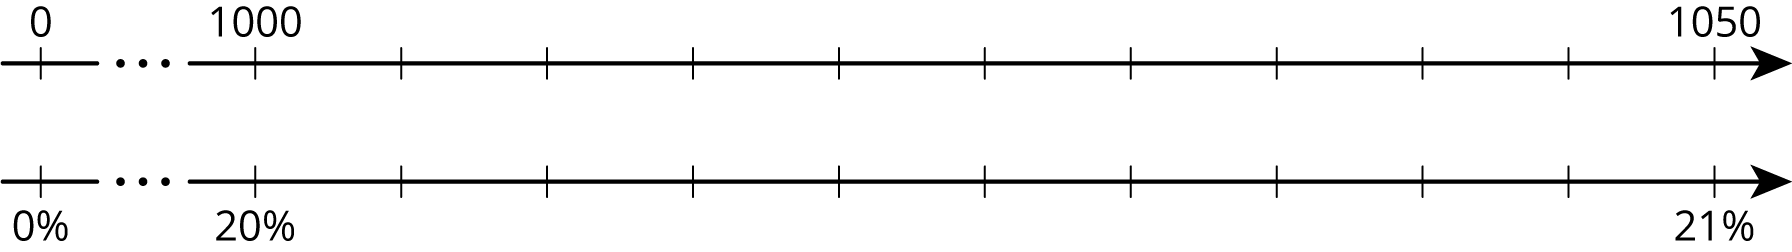 A double number line with 12 tick marks. The first tick mark is followed by a break and then 11 evenly spaced tick marks. For the top number line, the number 0 is on the first tick mark, 1000 on the second, and 1050 on the twelfth. For the bottom number line, the percentage 0% is on the first tick mark, 20% on the second, and 21% on the twelfth.